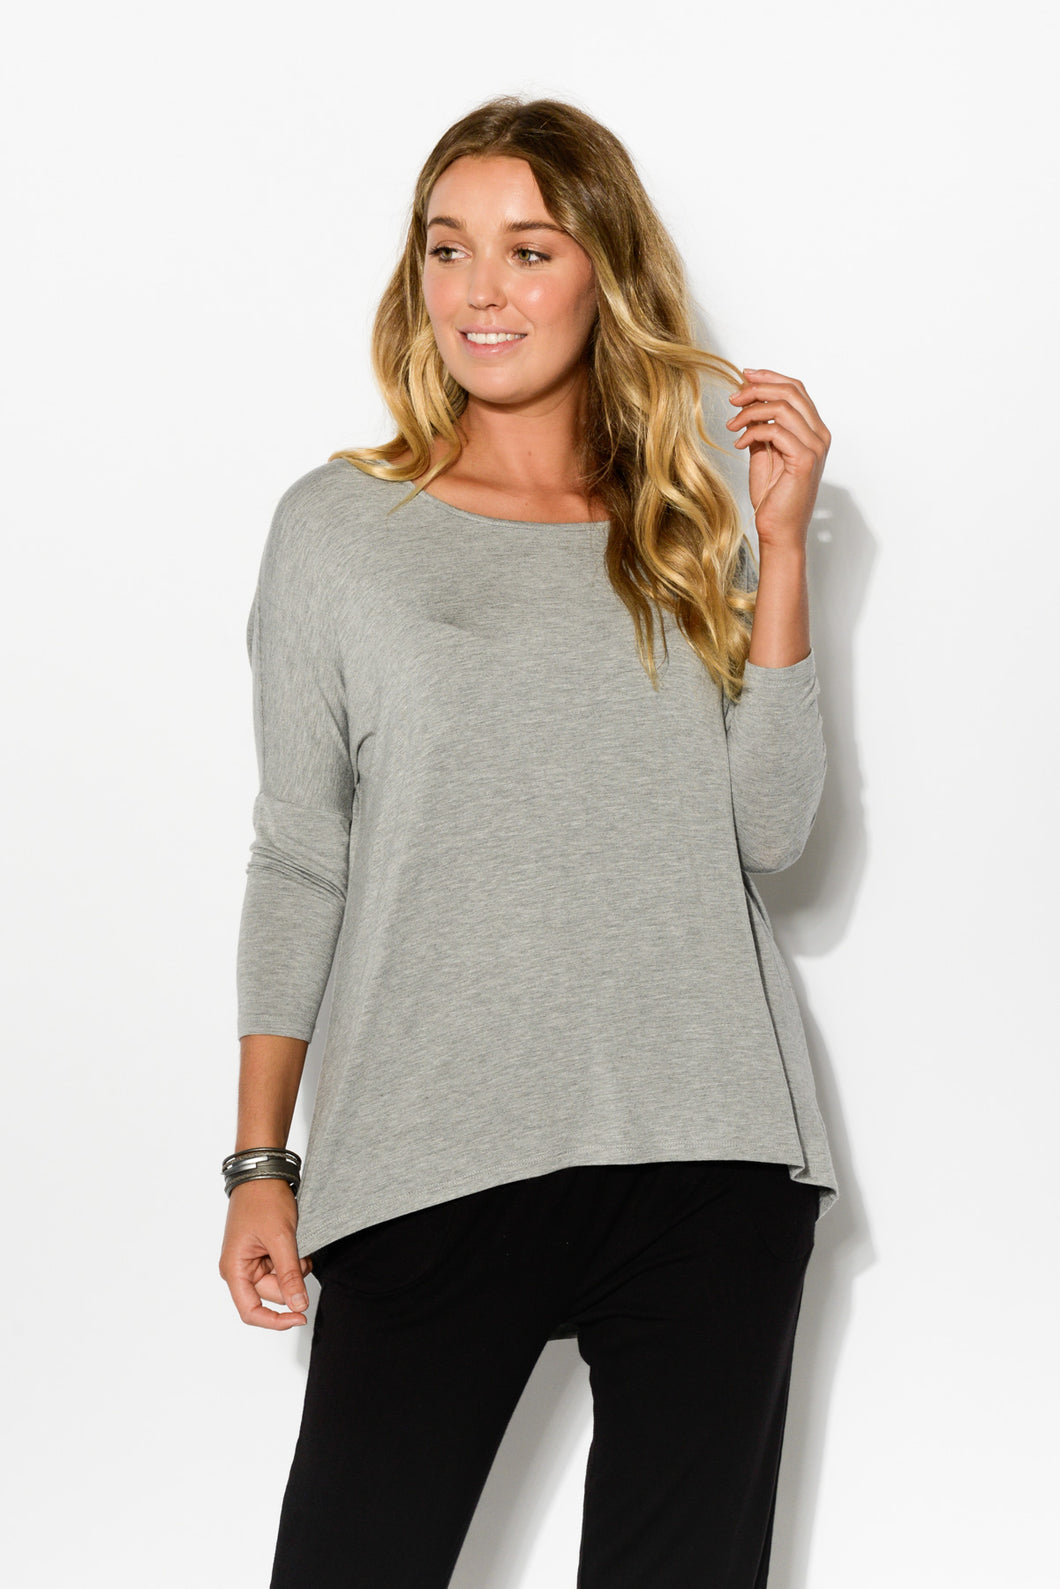 Grey Marle Milan 3/4 Sleeve Top - Blue Bungalow